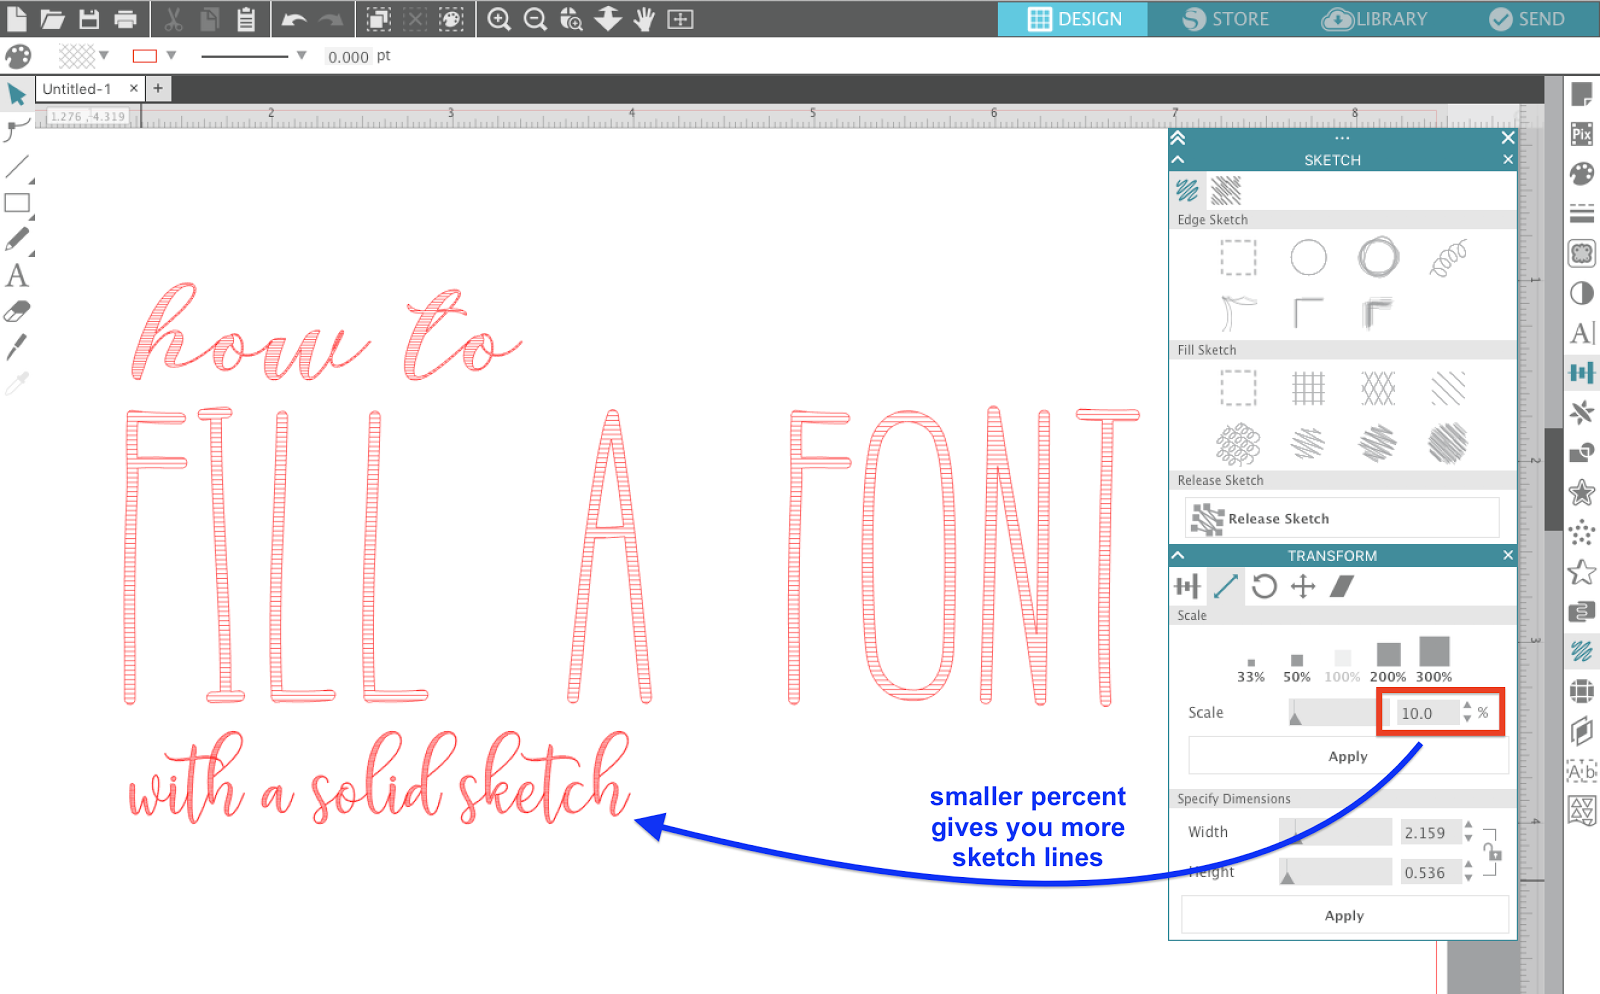 Silhouette sketch pen solid fill hack silhouette school your design will now have more sketch lines across it so when you sketch with your silhouette cameo sketch pens the text will appear to have a solid sketch fandeluxe Image collections